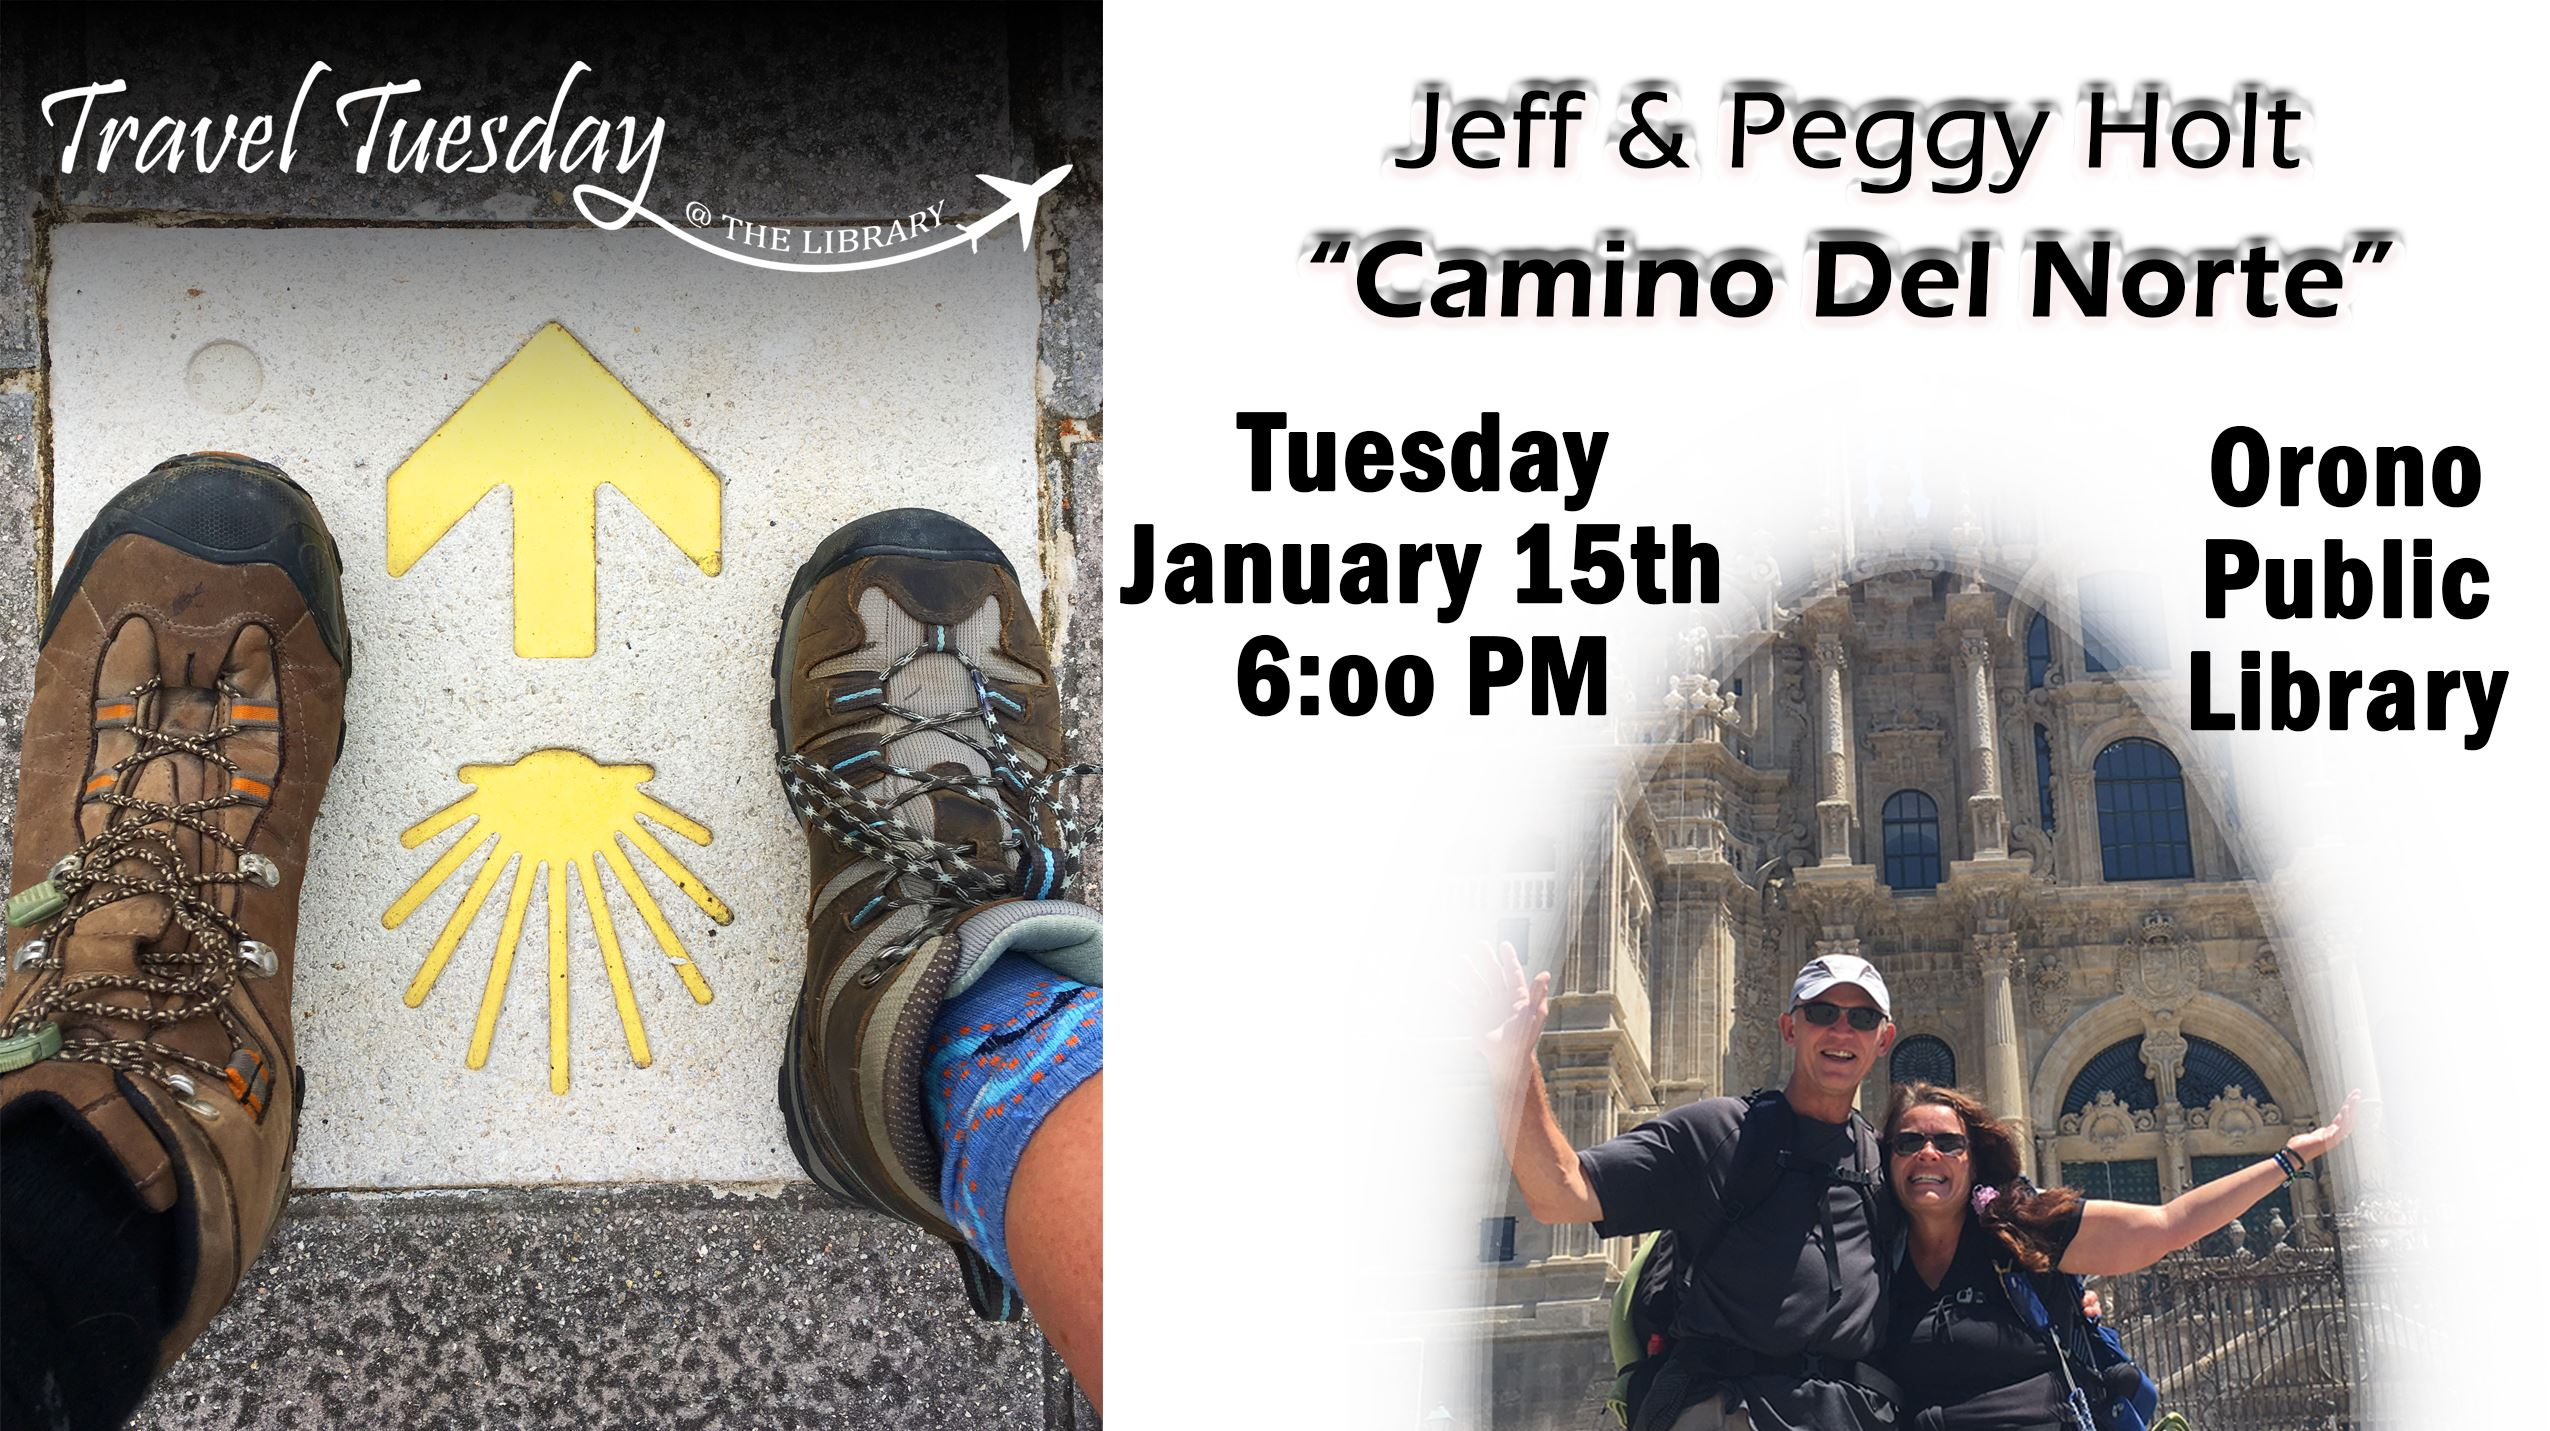 Jeff & Peggy Holt 6pm 01/15/19 at Orono Library discussing their Camino Del Norte trip